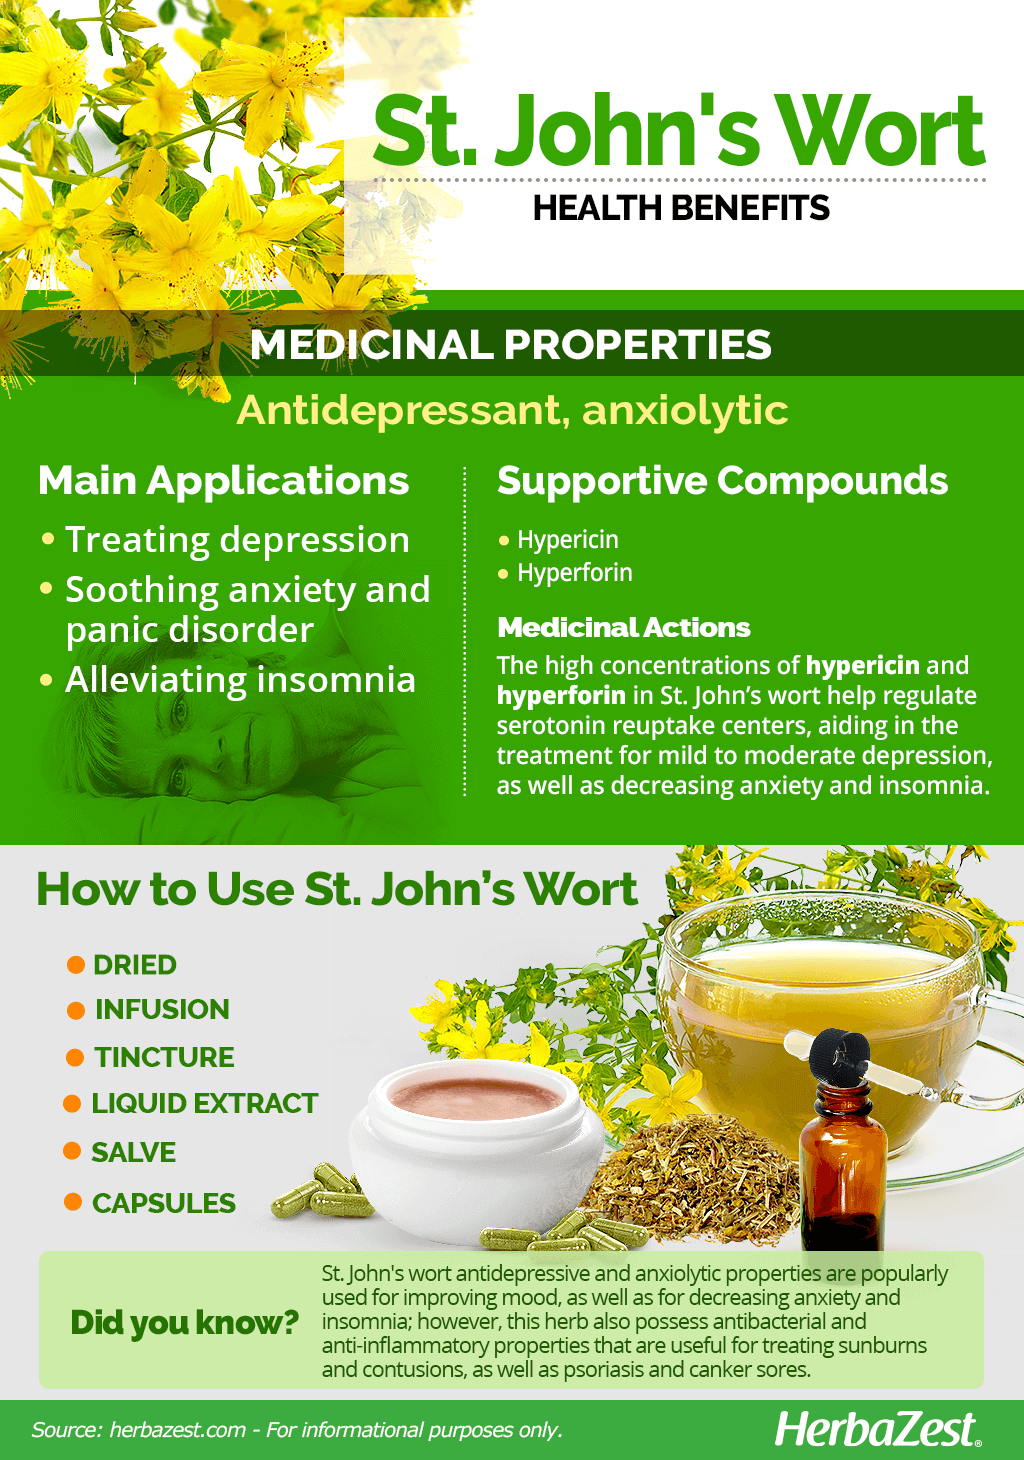 All About St. John's Wort